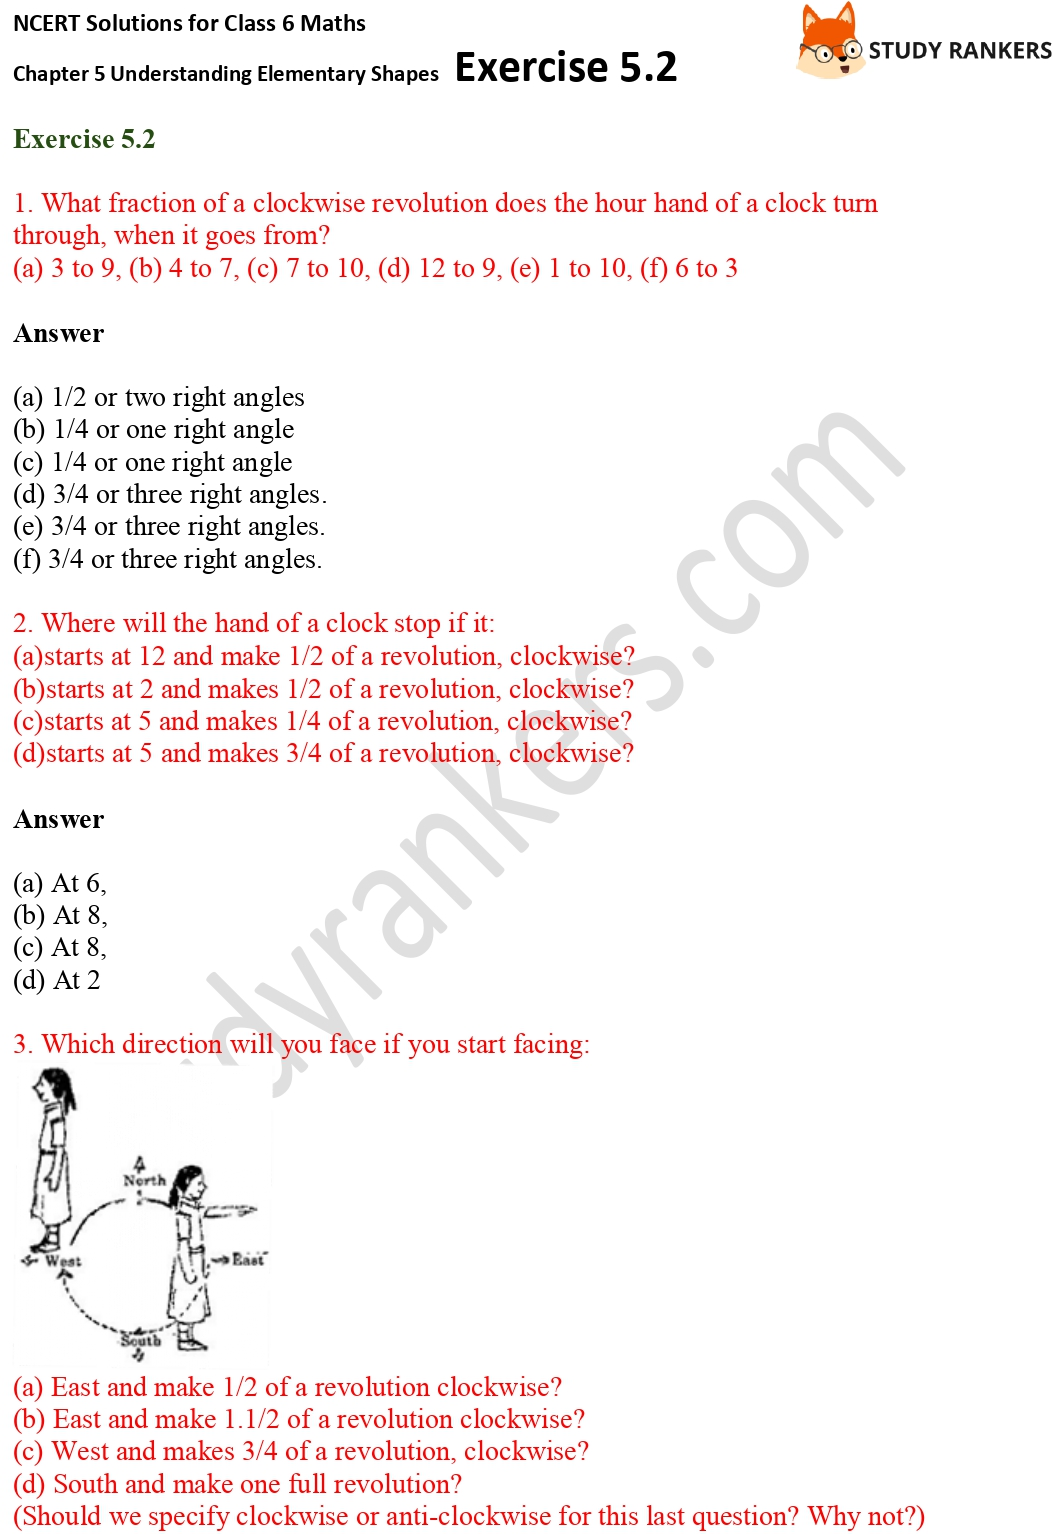 NCERT Solutions for Class 6 Maths Chapter 5 Understanding Elementary Shapes Exercise 5.2 Part 1